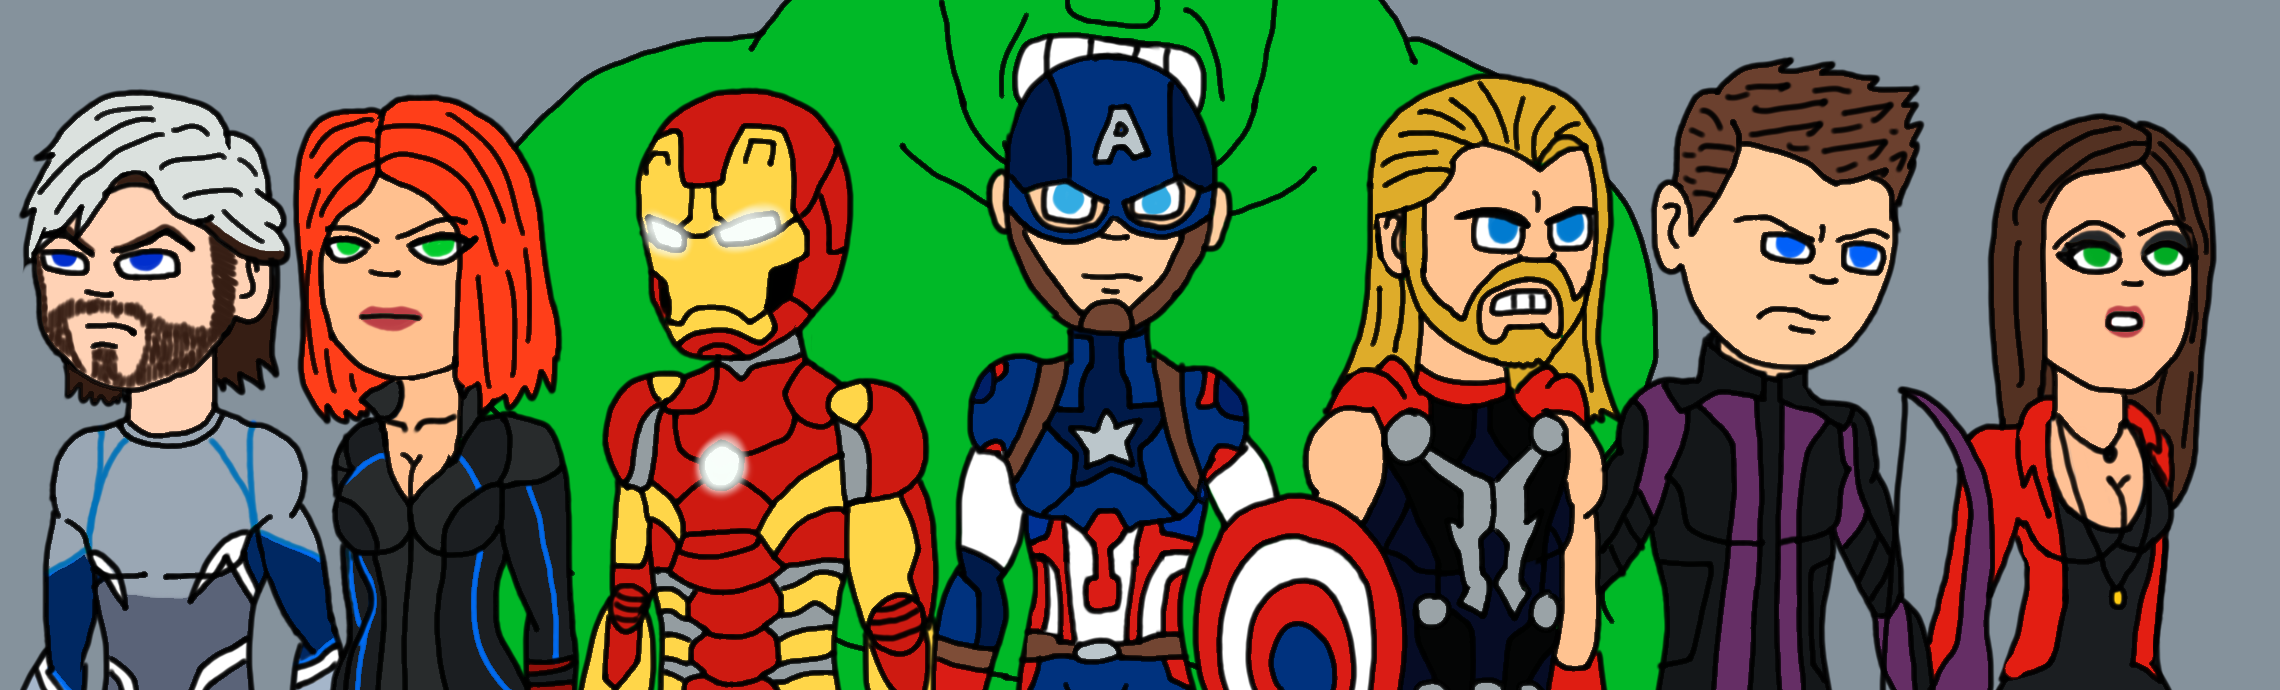 Avengers Age Of Ultron By Iloegbunam On Deviantart: Avengers Age Of Ultron By Takutanuva-teridax On DeviantArt